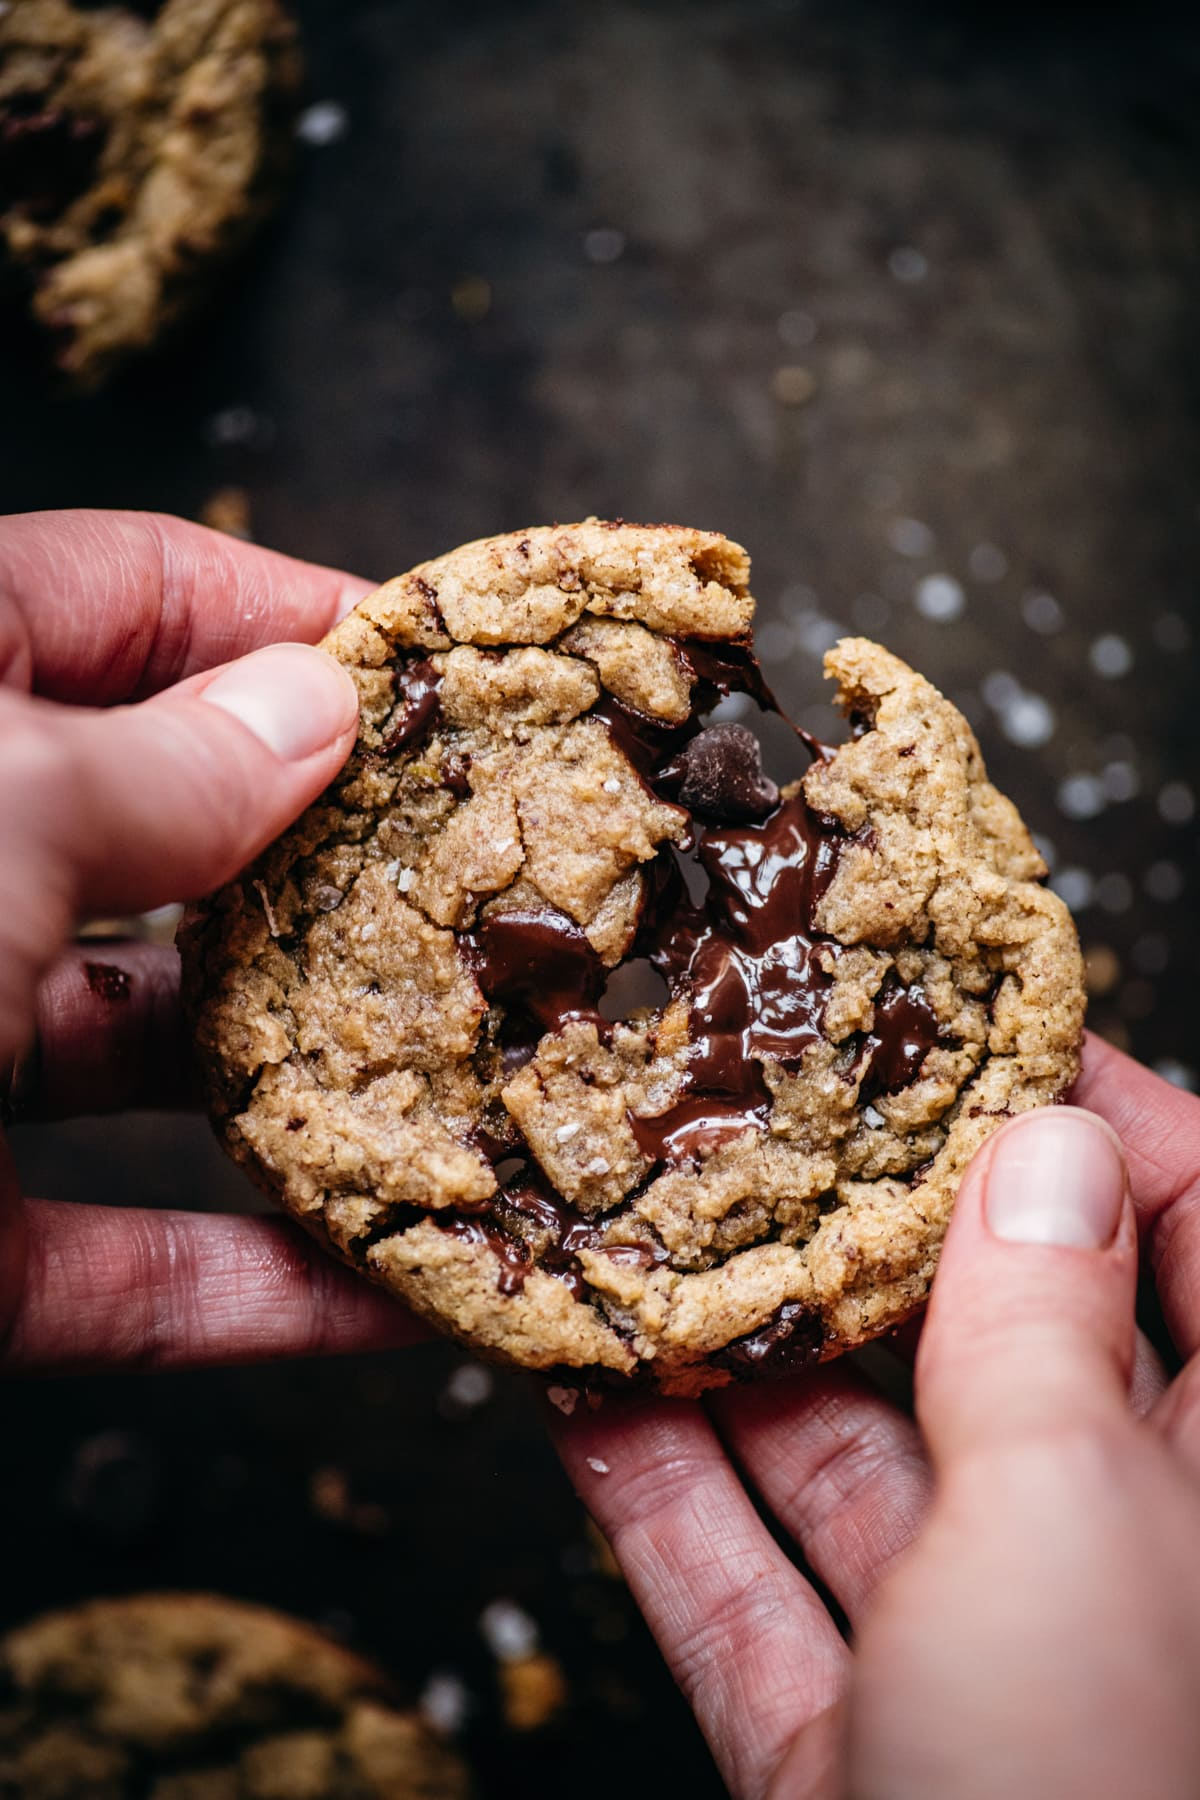 close up view of two hands pulling apart a freshly baked chocolate chip cookie.